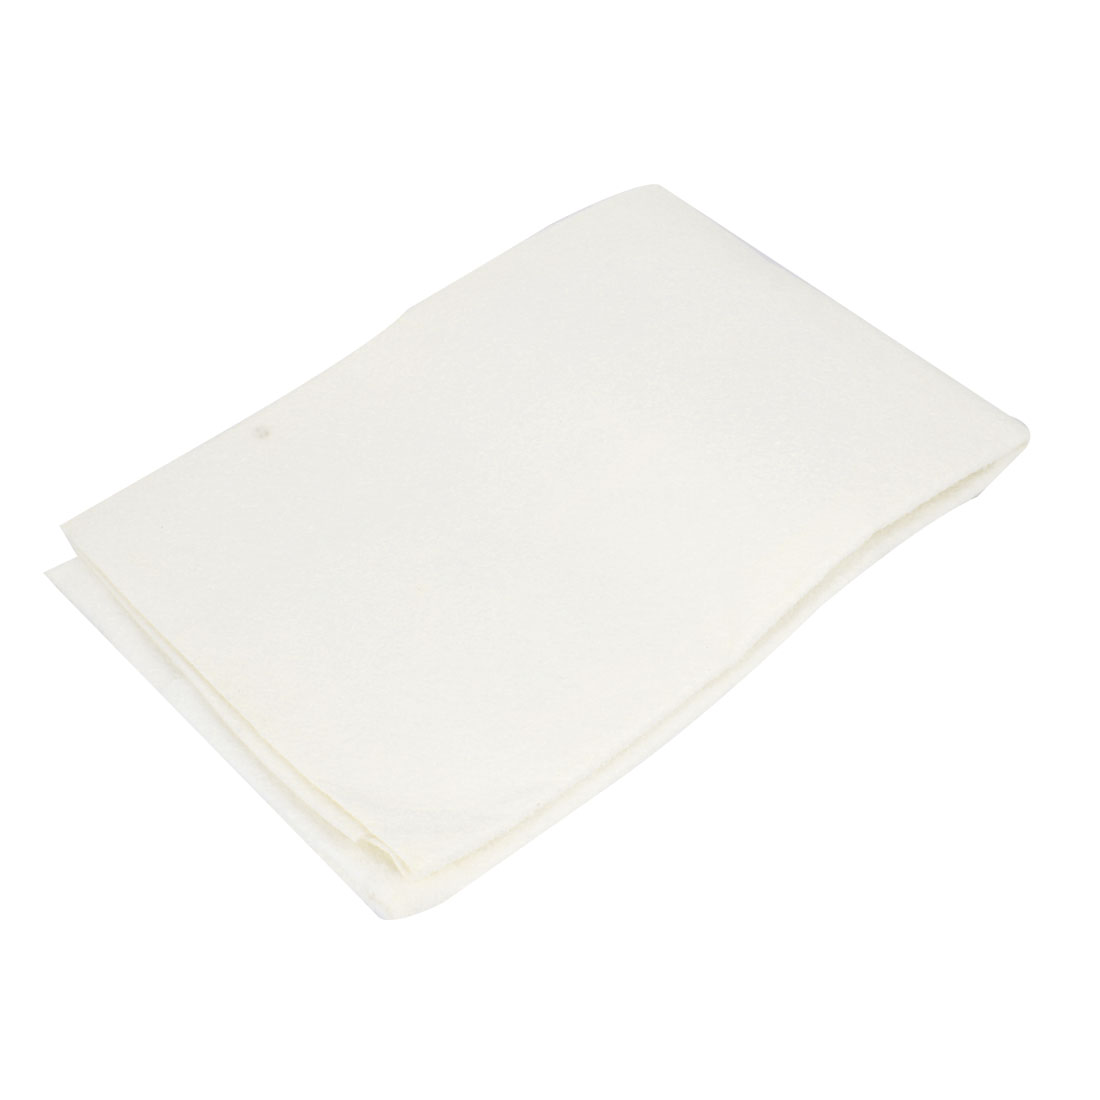 "White Synthetic Chamois Cleaning Washing Towel 21"" x 18"" for Car Auto"